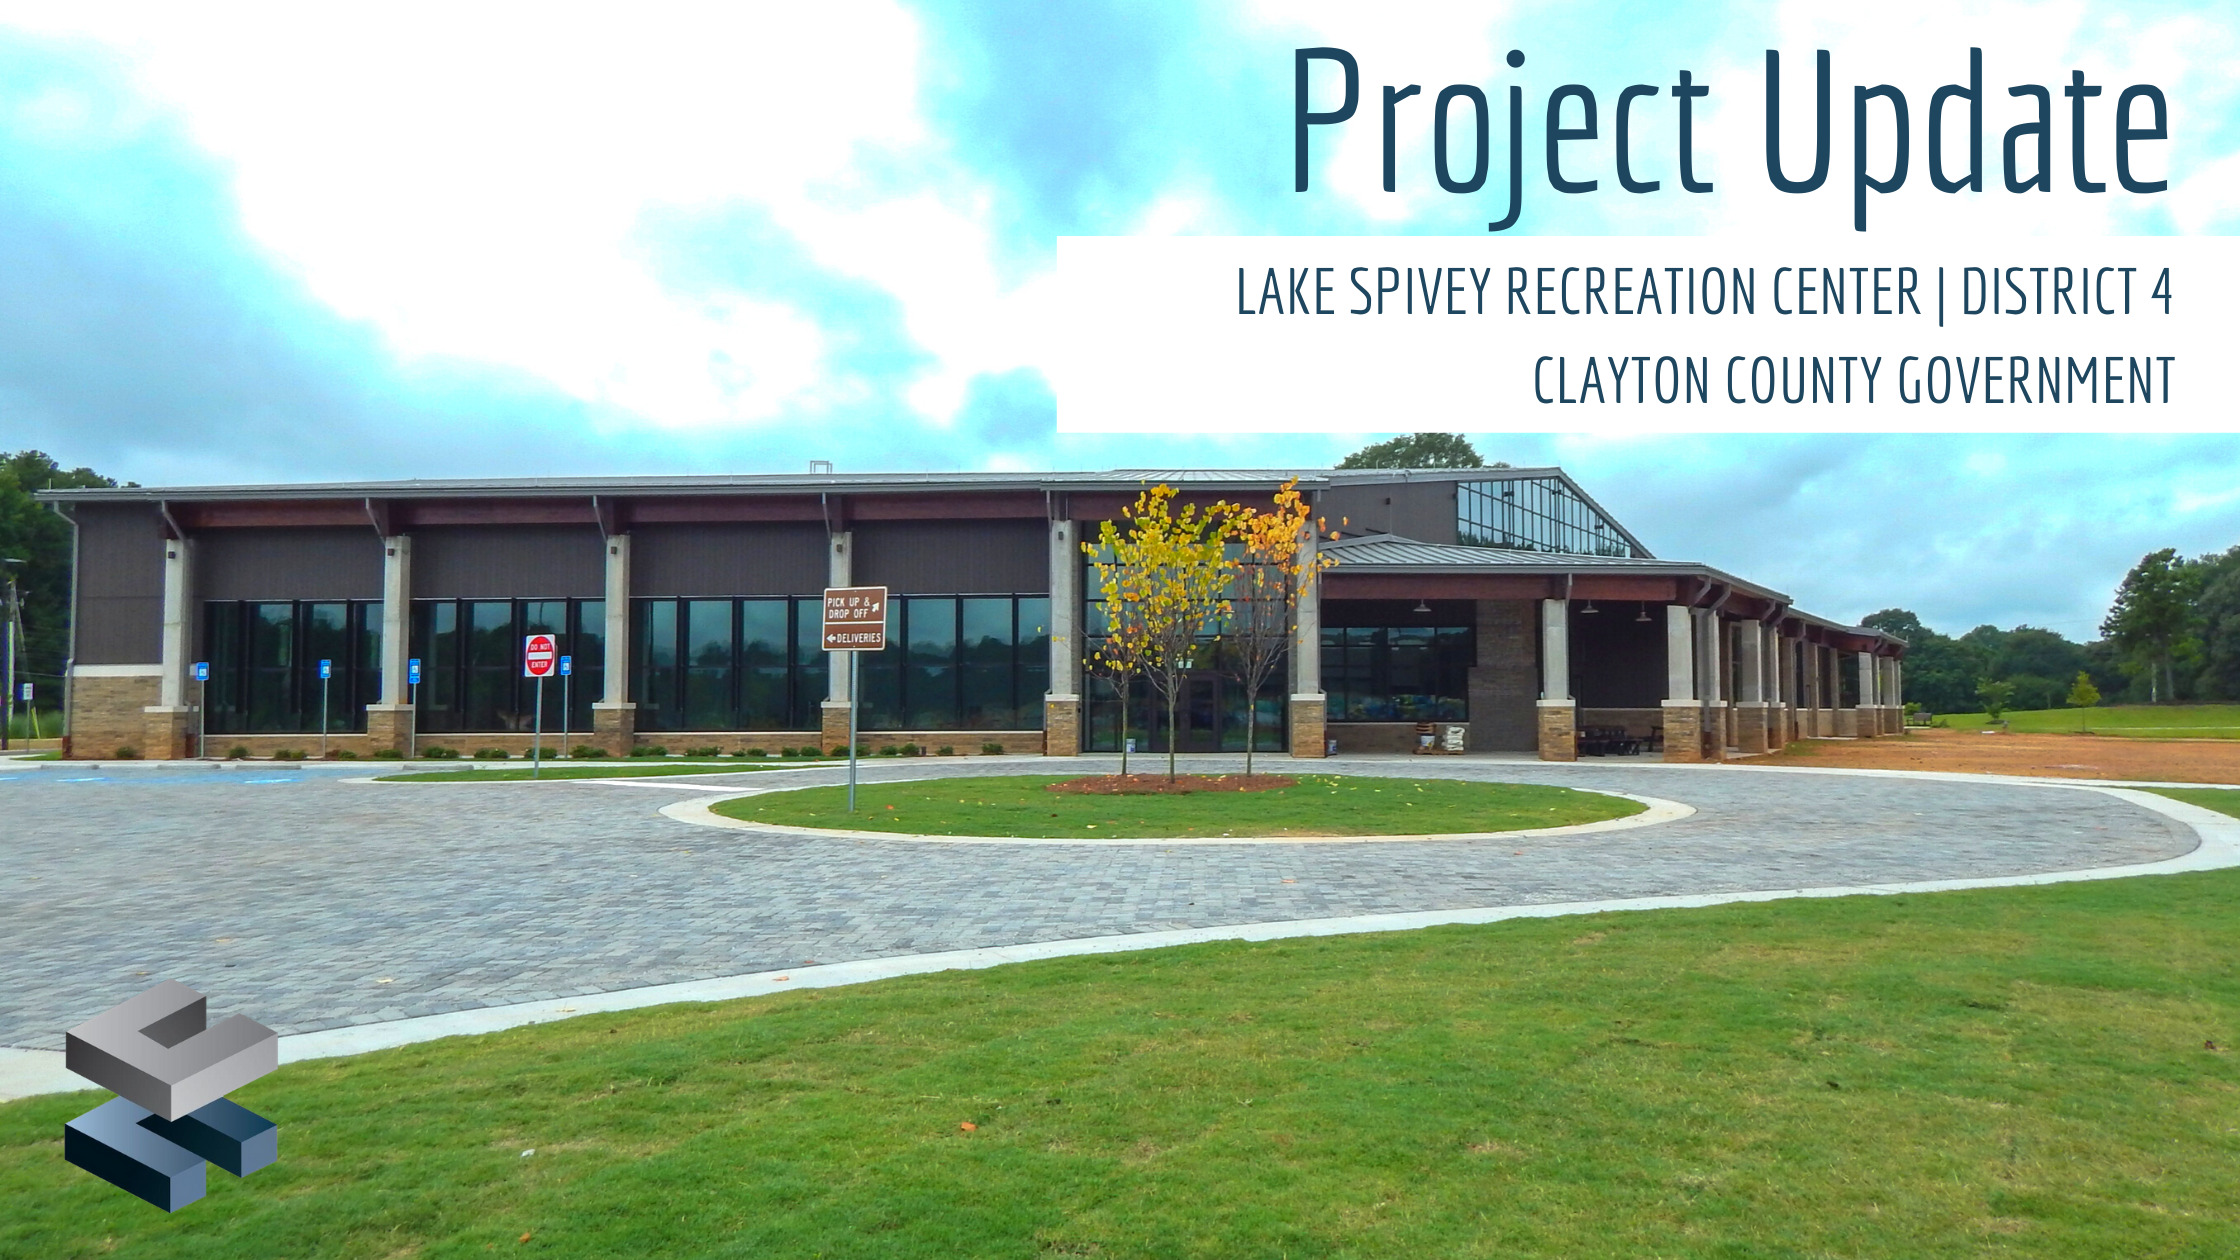 Lake Spivey Recreation Center | Clayton County | Cooper & Company General Contractors